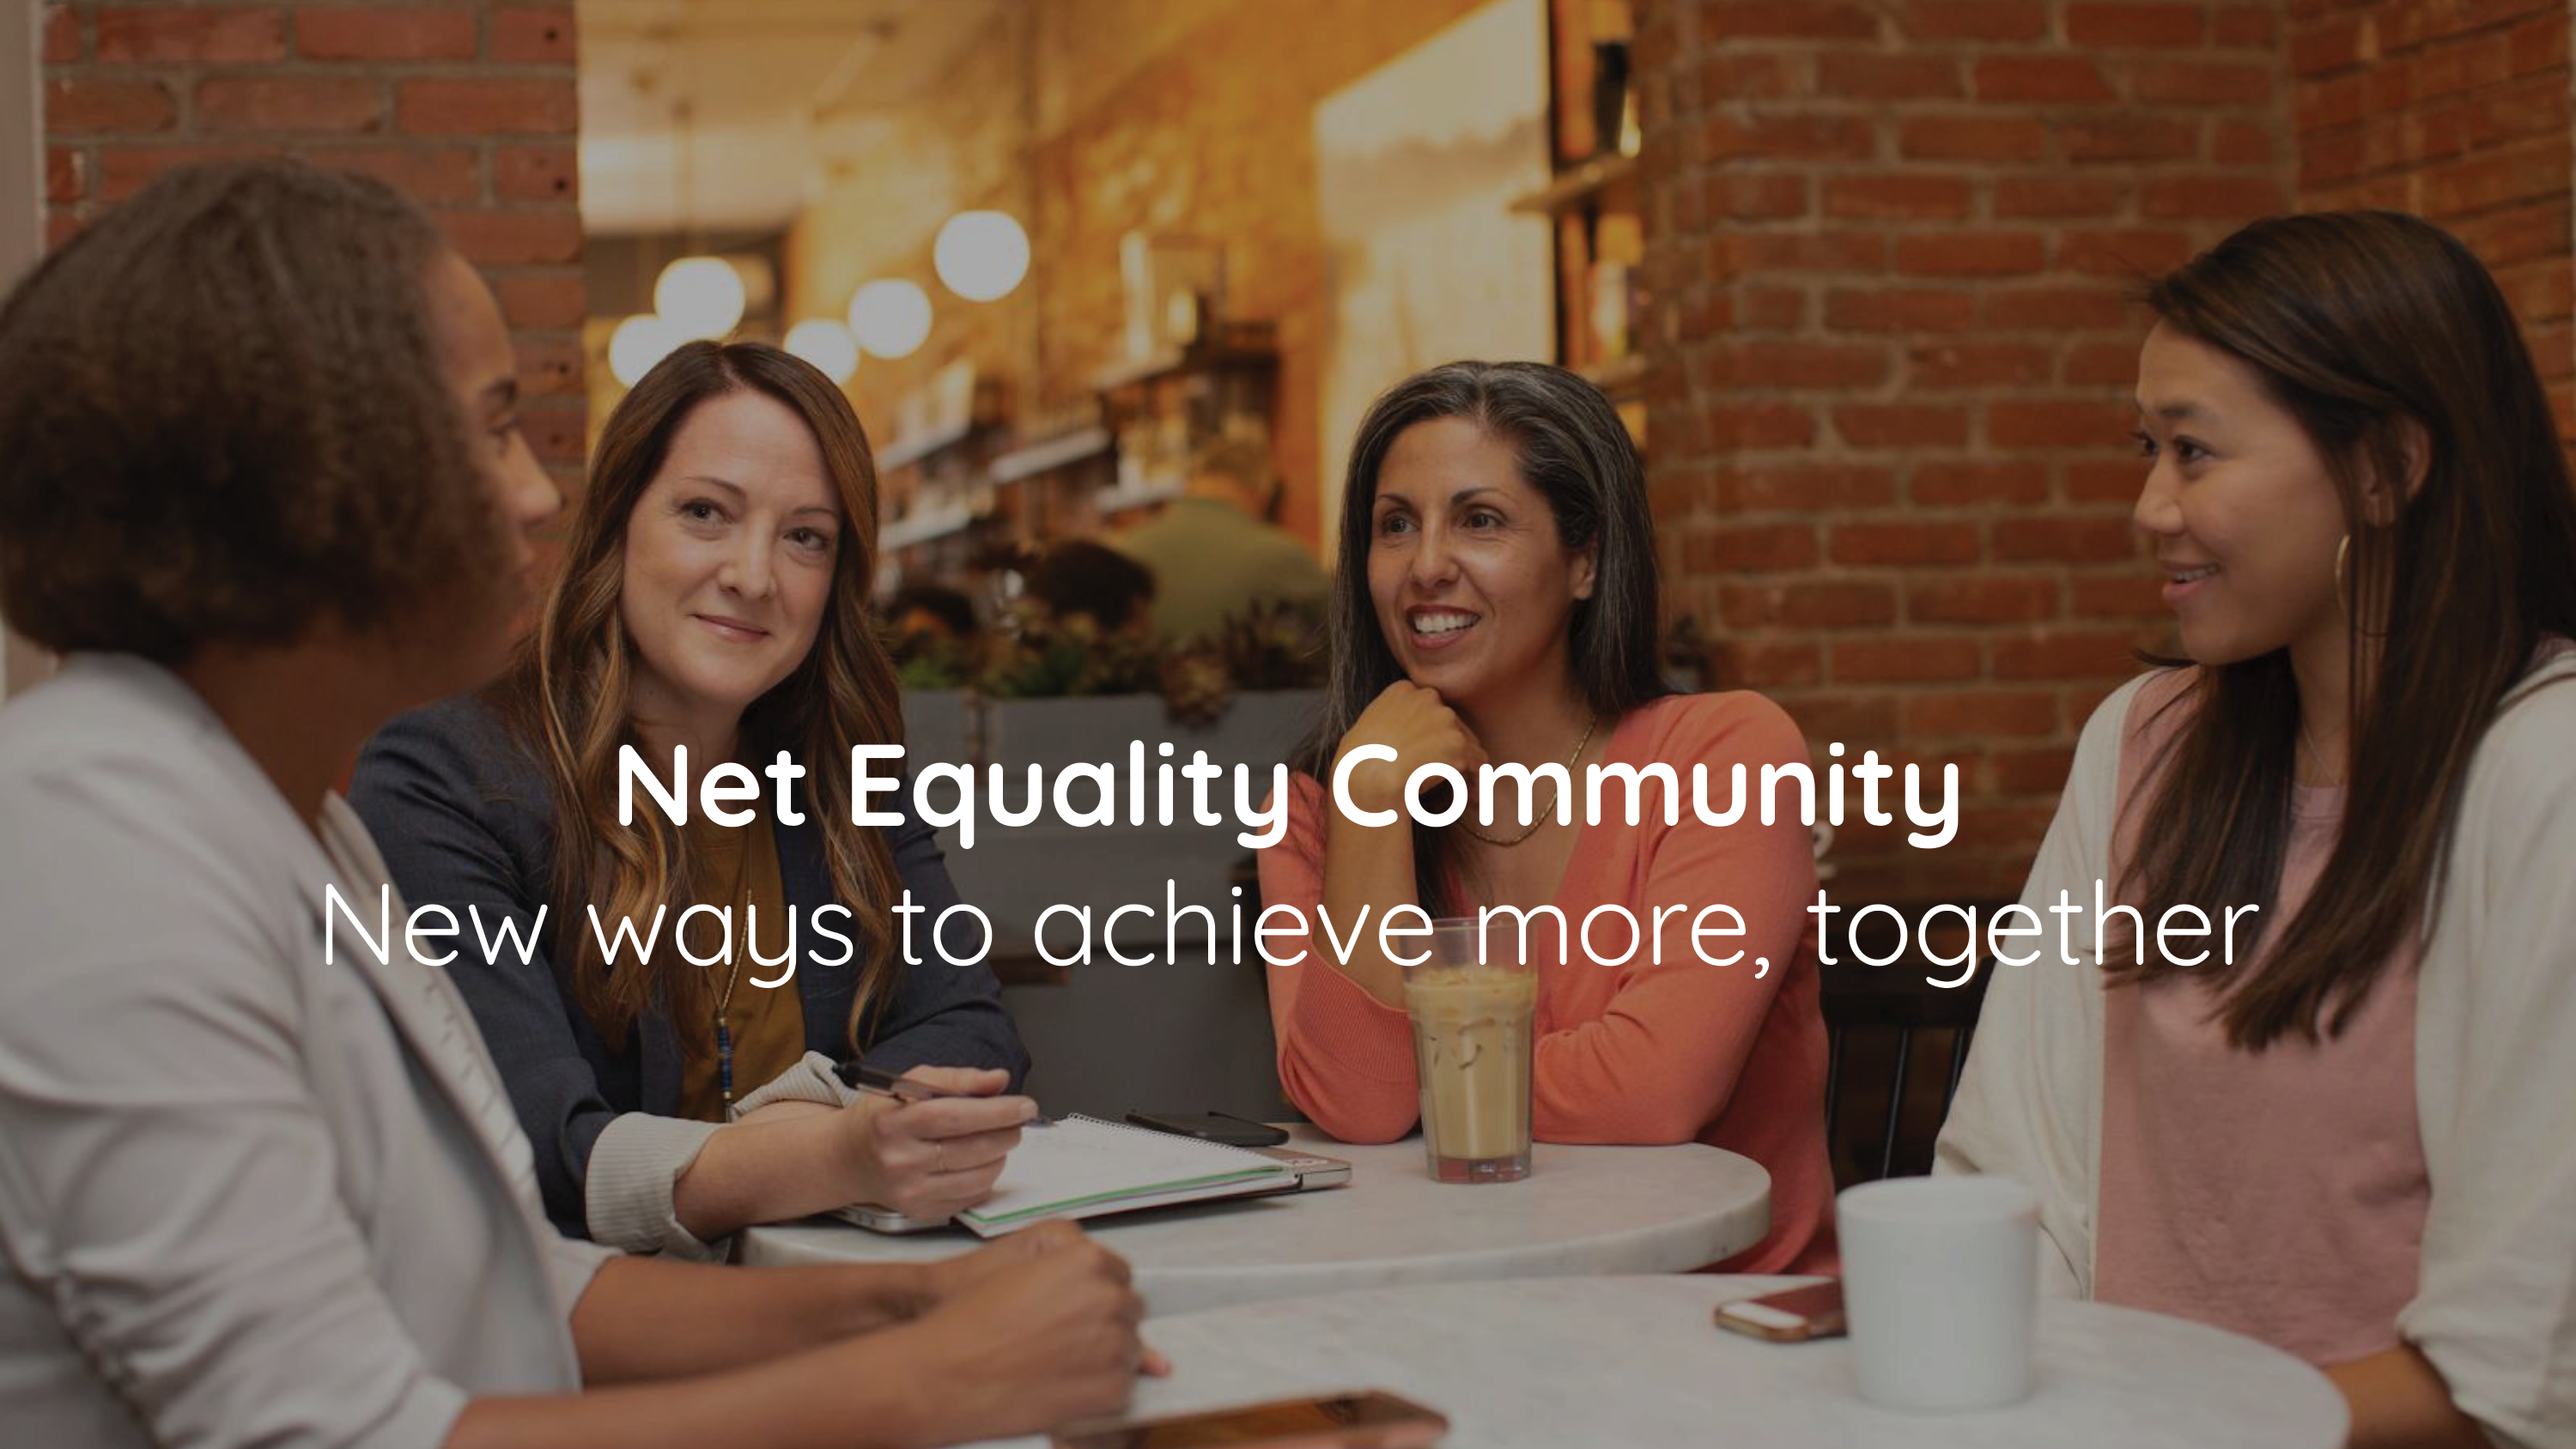 Photo of 4 women sitting around a table with text Net Equality Community: New Ways to Achieve more together.